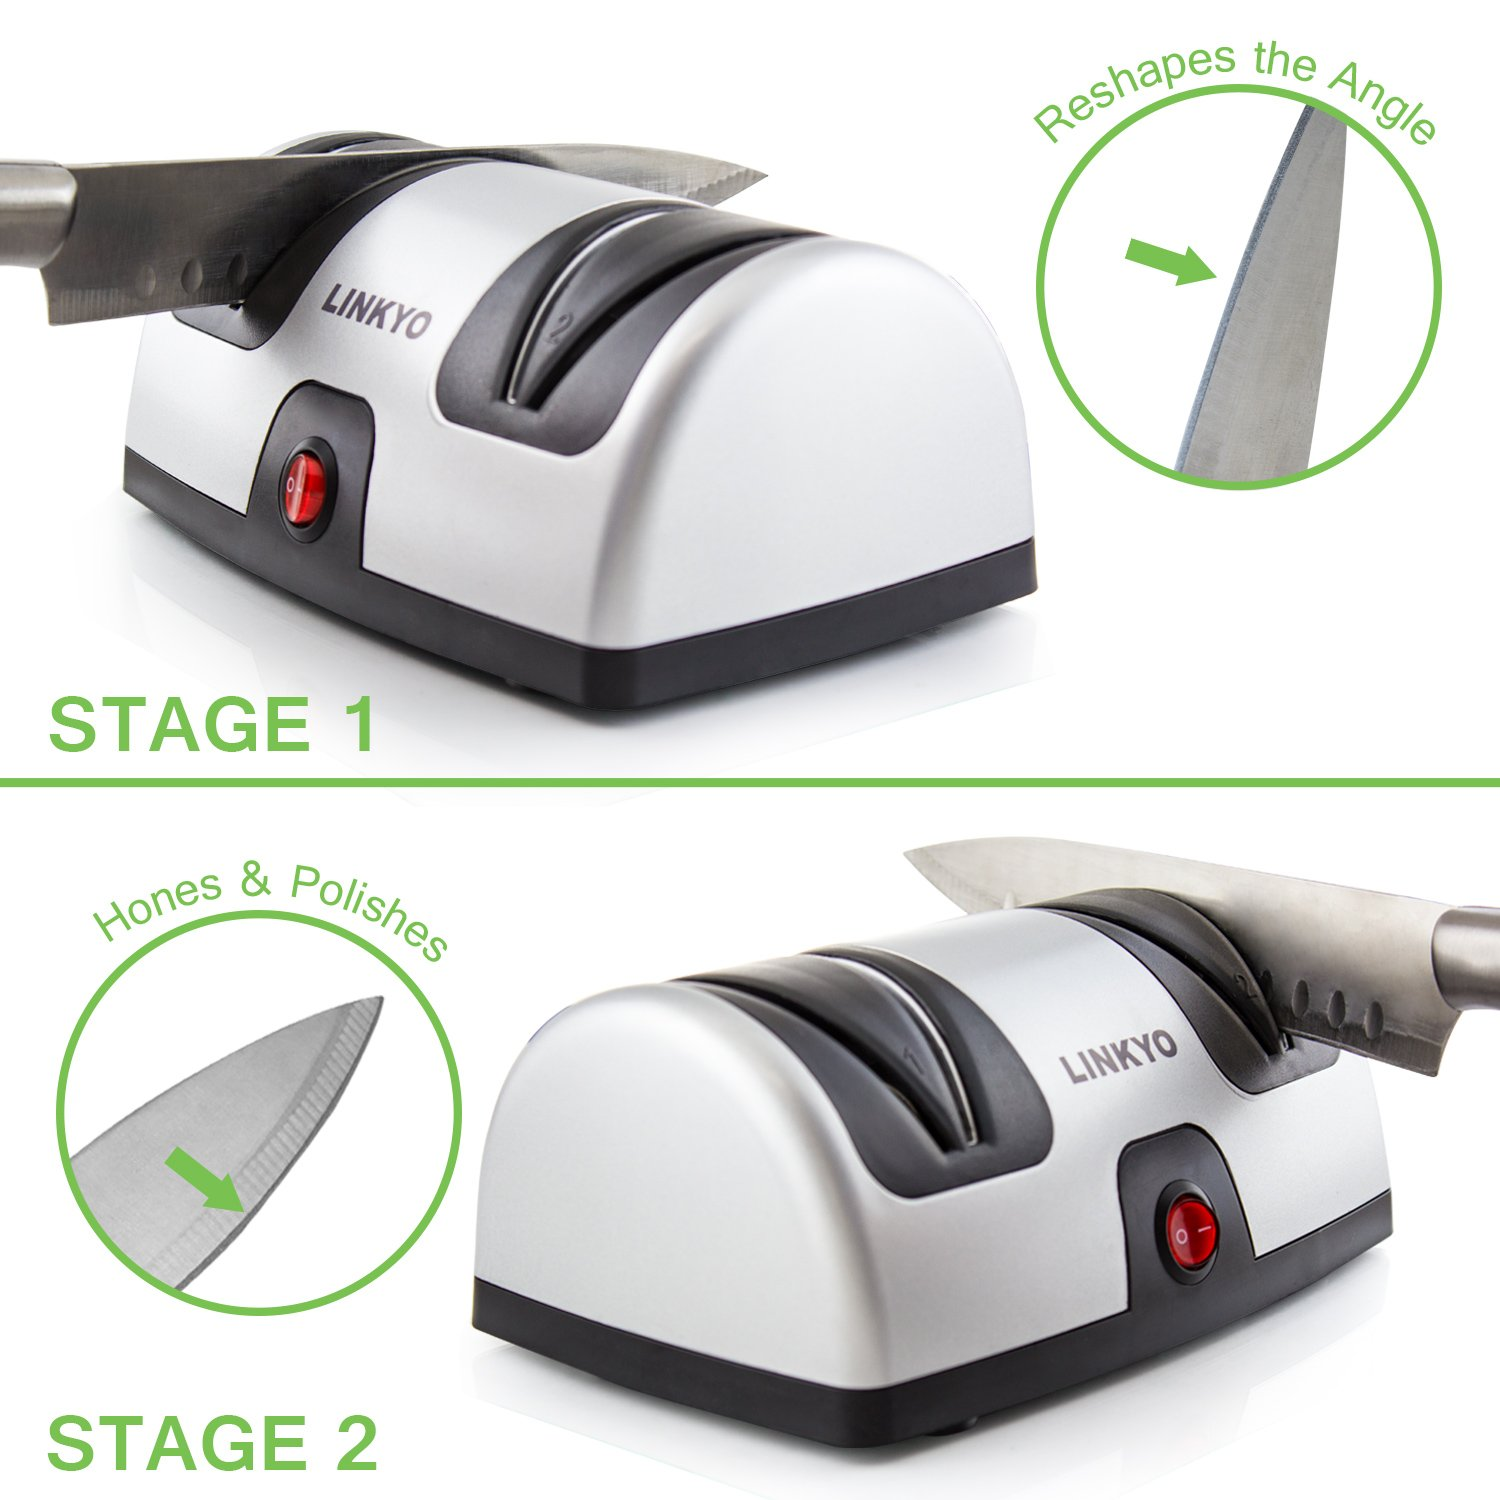 LINKYO Electric Knife Sharpener, Kitchen Knives Sharpening System by LINKYO (Image #5)